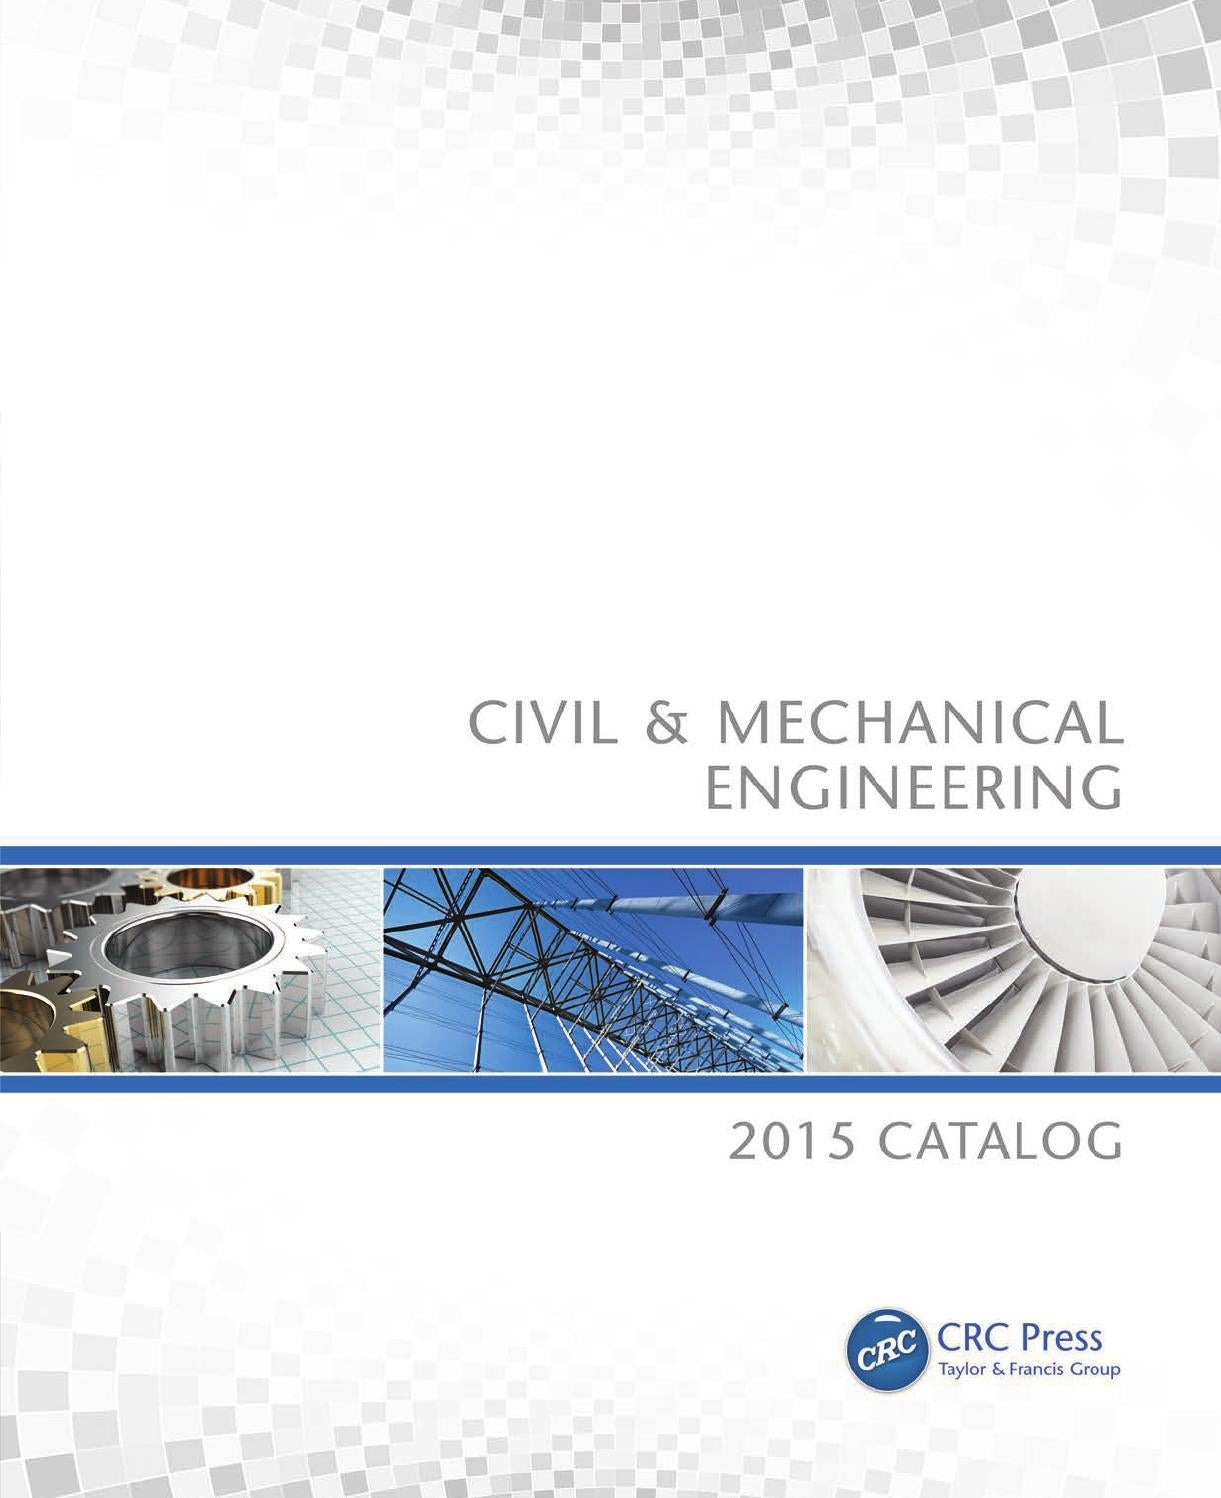 Civil mechanical engineering by crc press issuu fandeluxe Image collections